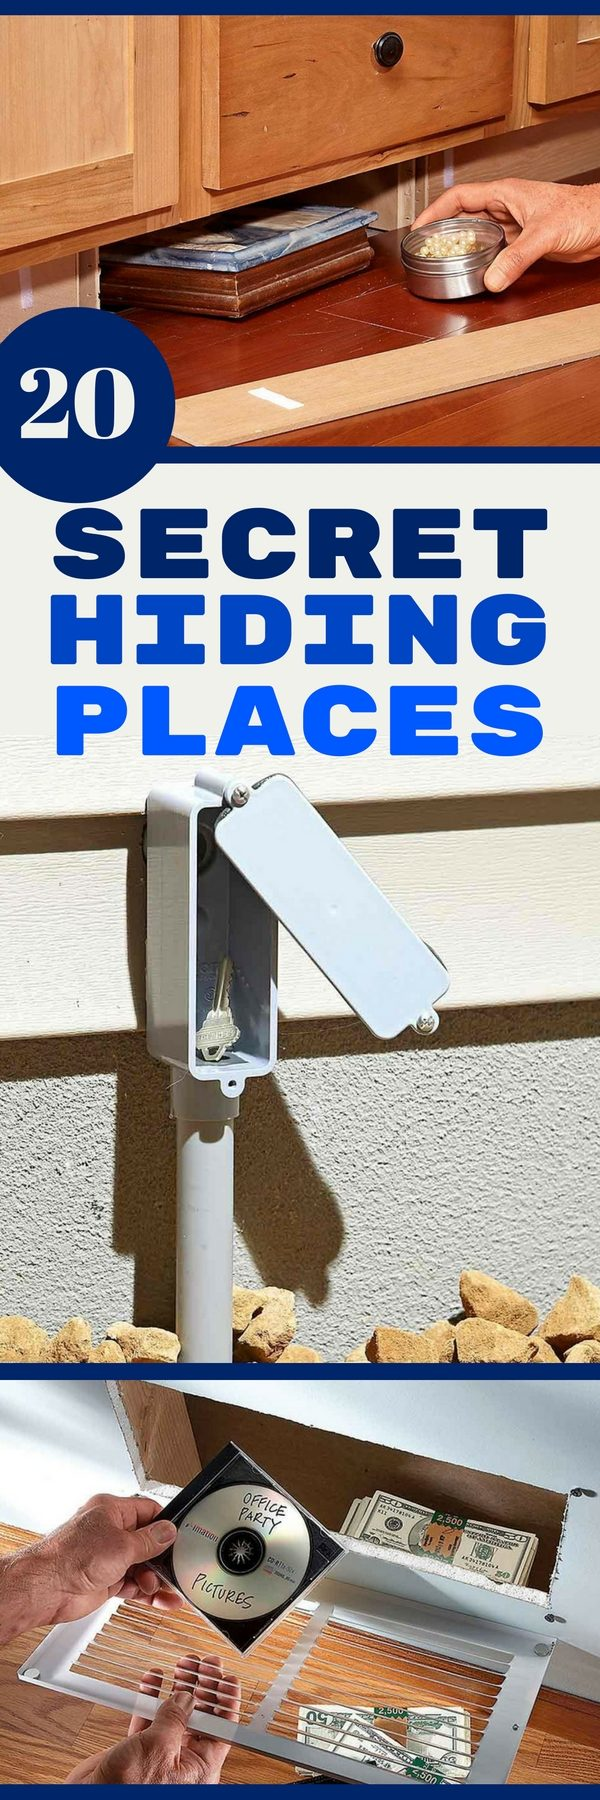 20 Secret Hiding Places The Family Handyman